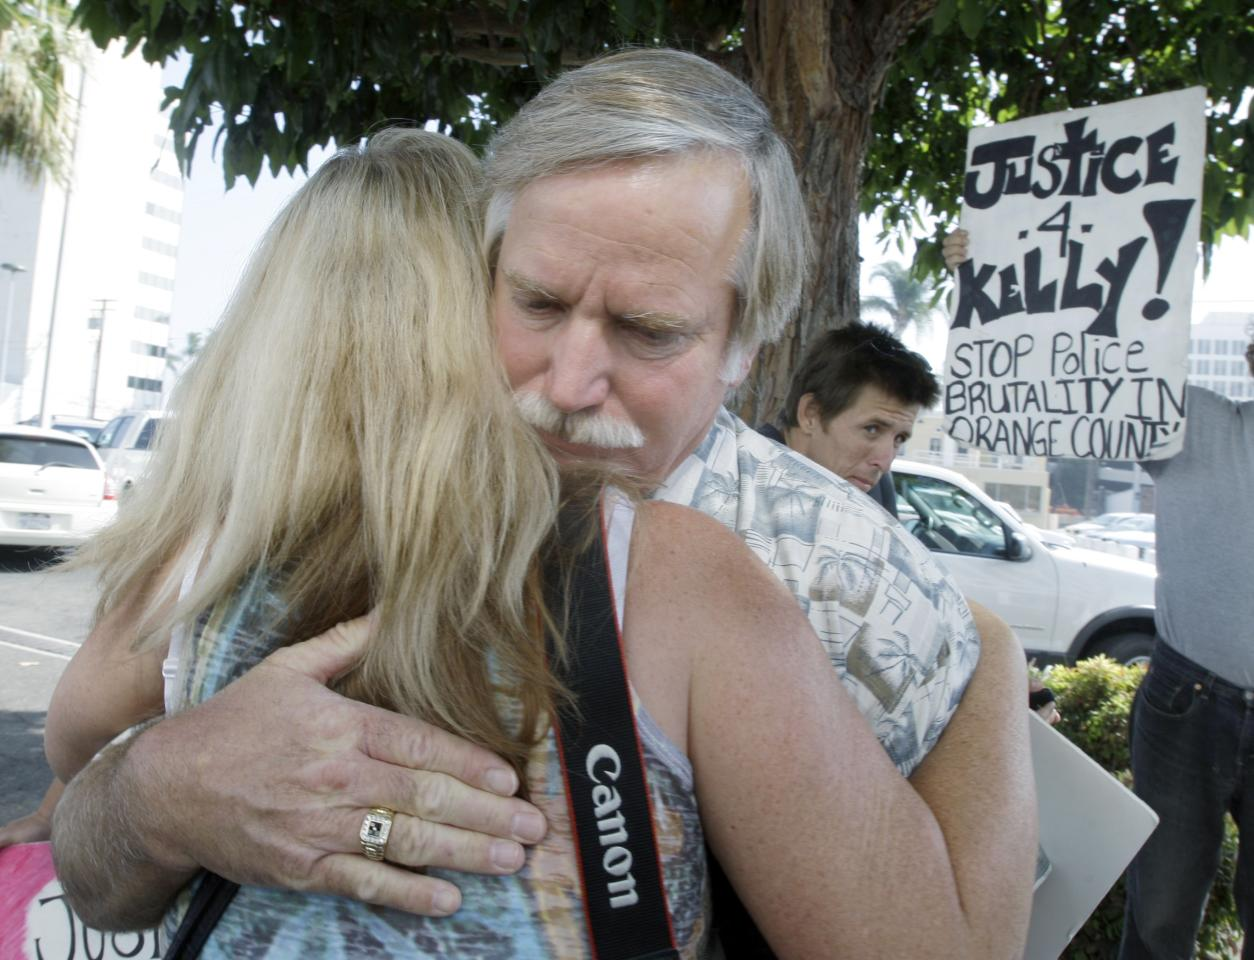 Ron Thomas, father of Kelly Thomas, embraces a supporter before Orange County, Calif., District Attorney Tony Rackauckas announces that two police officers will be charged in the death of his son, Kelly Thomas, a mentally ill homeless man, at a news conference in Santa Ana, Calif., Wednesday, Sept. 21, 2011. Fullerton, Calif., police officer Manuel Ramos was charged with one count each of second degree murder and involuntary manslaughter in the death of Thomas after a violent confrontation on July 5 with police officers. Police Cpl. Jay Cicinelli was charged with one count each of involuntary manslaughter and excessive force. (AP Photo/Reed Saxon)